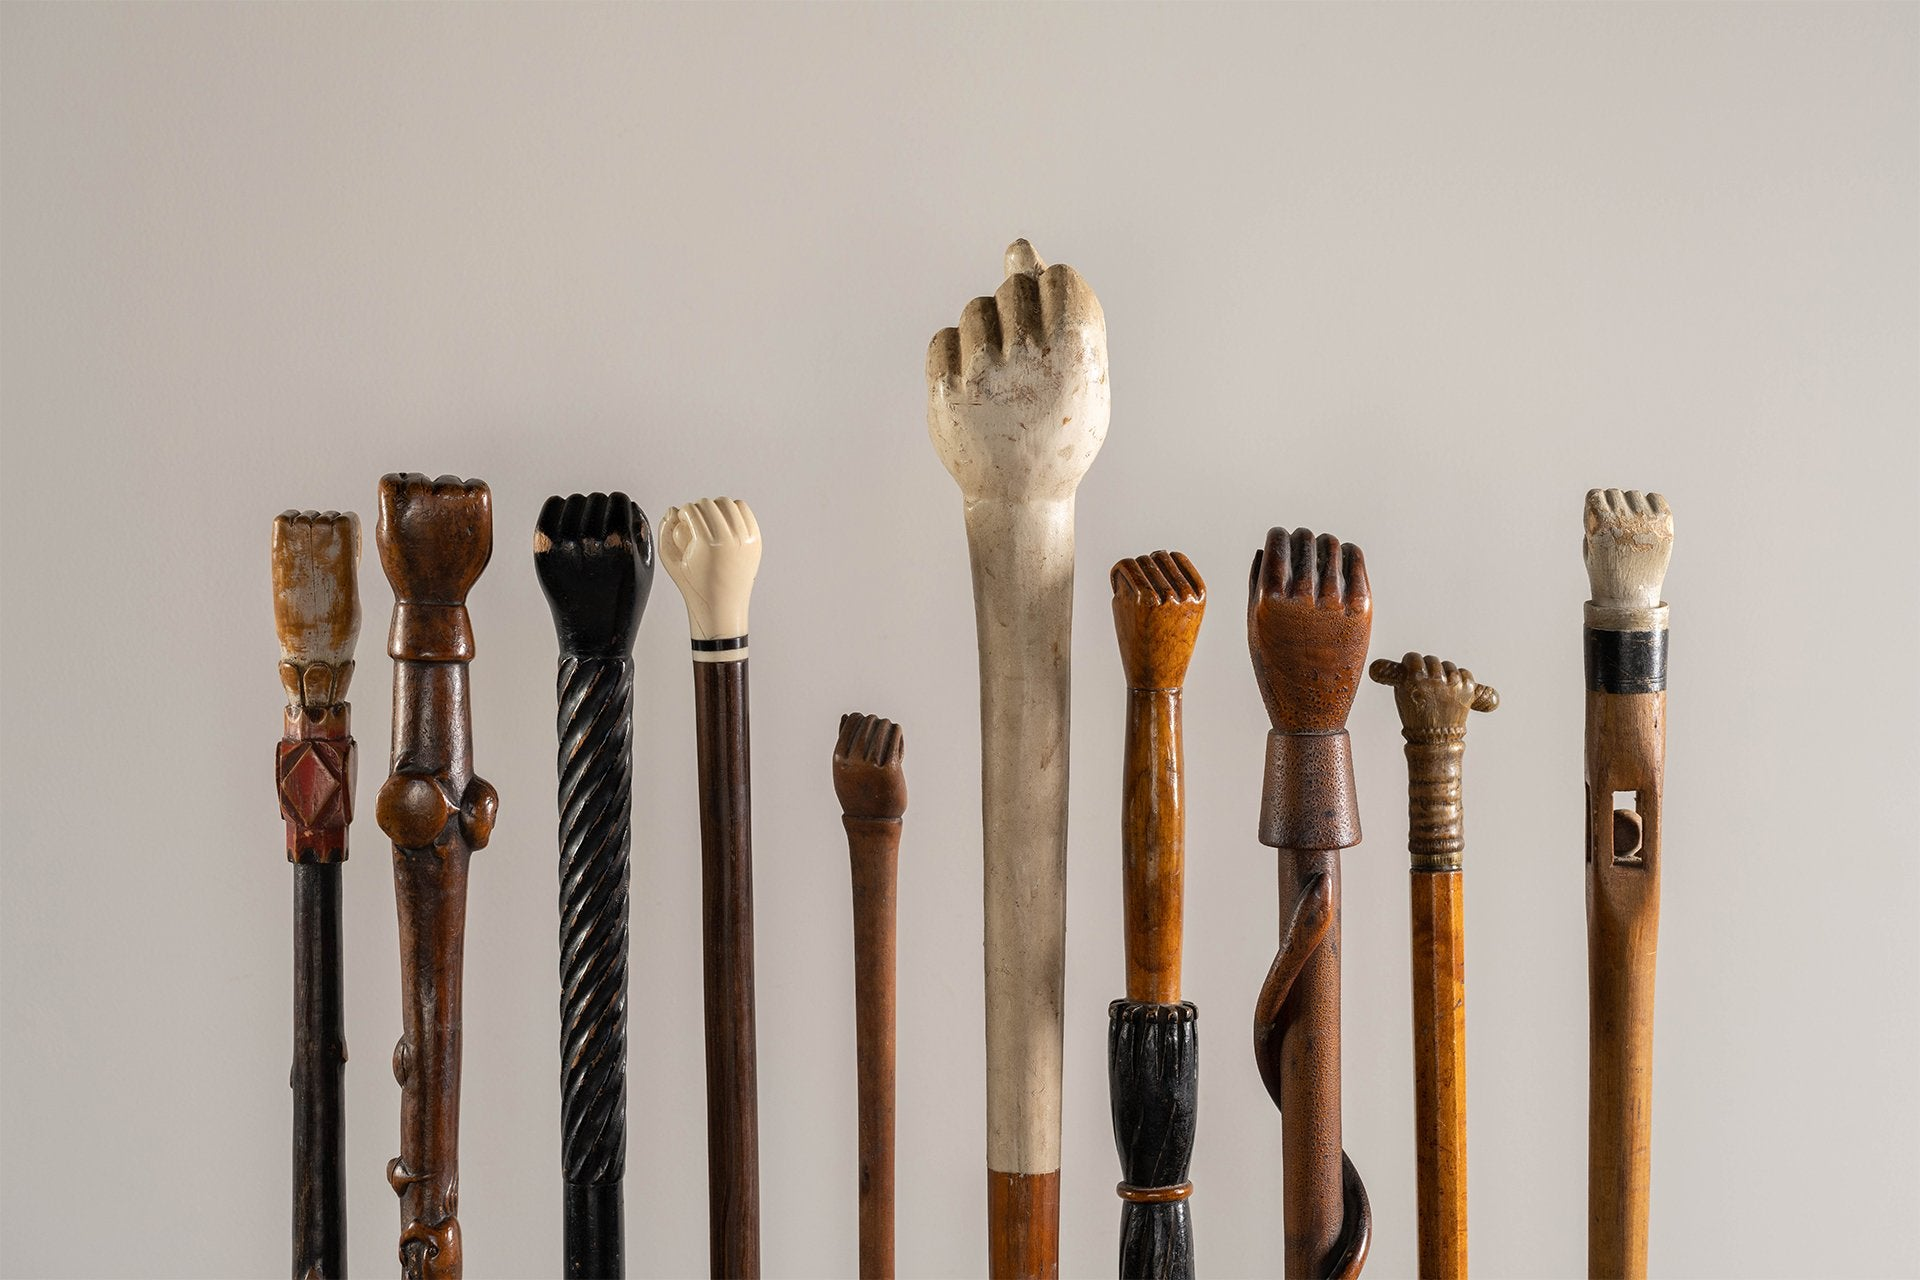 """Power to the People"": a Collection of Ten Walking Sticks with Clinched Fists"